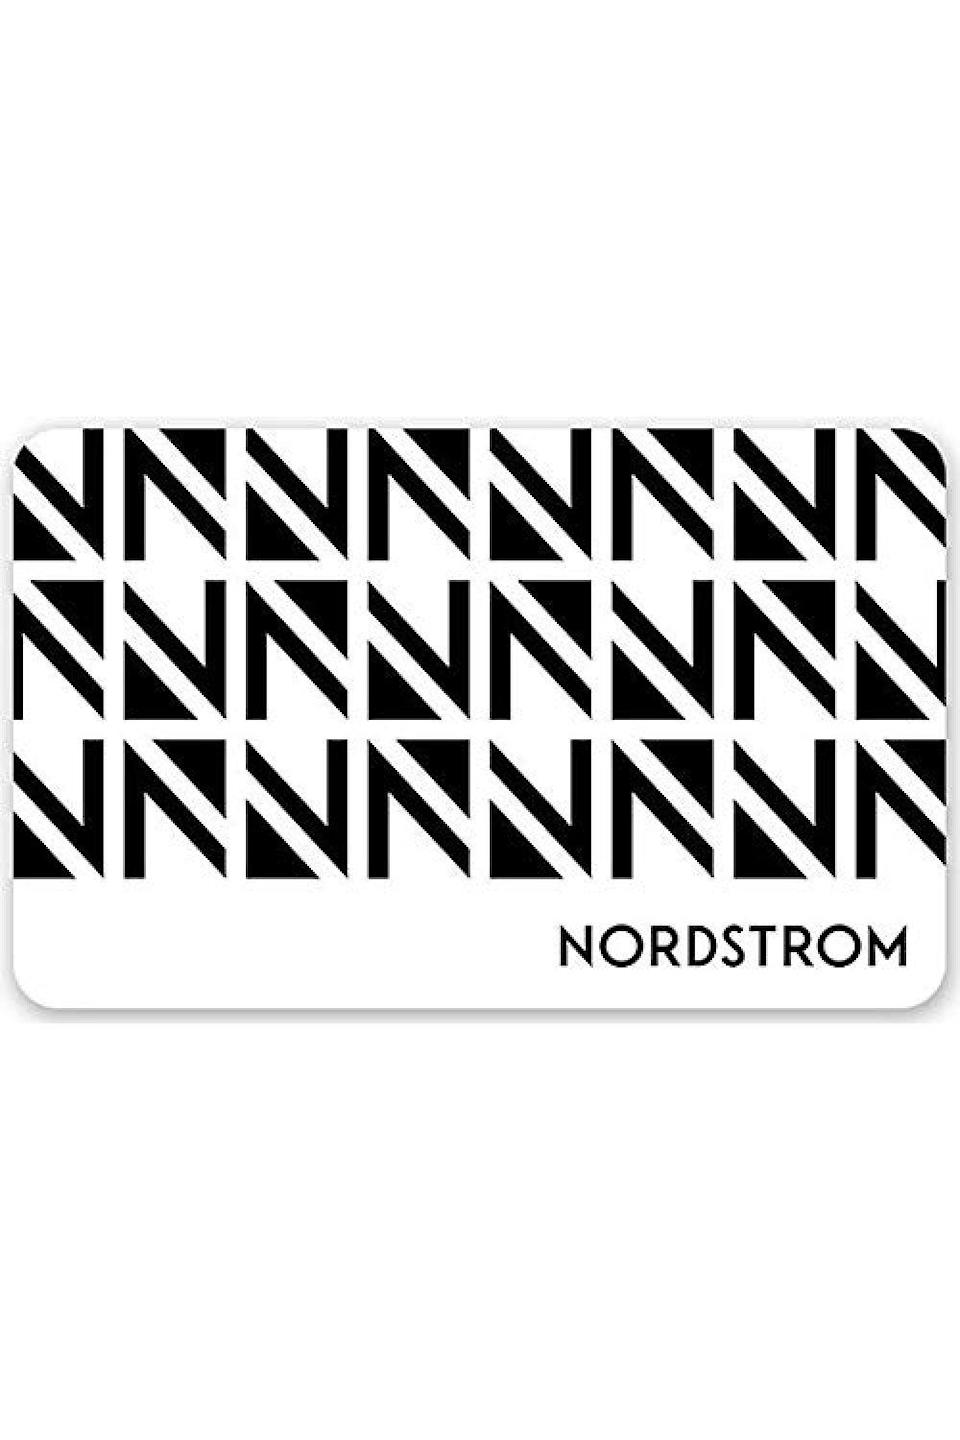 """<p><strong>Nordstrom</strong></p><p>nordstrom.com</p><p><a href=""""https://www.amazon.com/Nordstrom-Gift-Cards-E-mail-Delivery/dp/B01M749CK5?tag=syn-yahoo-20&ascsubtag=%5Bartid%7C10049.g.34229001%5Bsrc%7Cyahoo-us"""" rel=""""nofollow noopener"""" target=""""_blank"""" data-ylk=""""slk:Shop Now"""" class=""""link rapid-noclick-resp"""">Shop Now</a></p><p>Another one of those gifts that could potentially work for anyone on your list is a gift card to a department store like Nordstrom. They carry <em>everything</em>, like shoes, cosmetics, handbags, ties, coats, bedding, swimwear—should I keep going or do you get the idea? I think you get it, so go ahead and get one or two of these.</p>"""